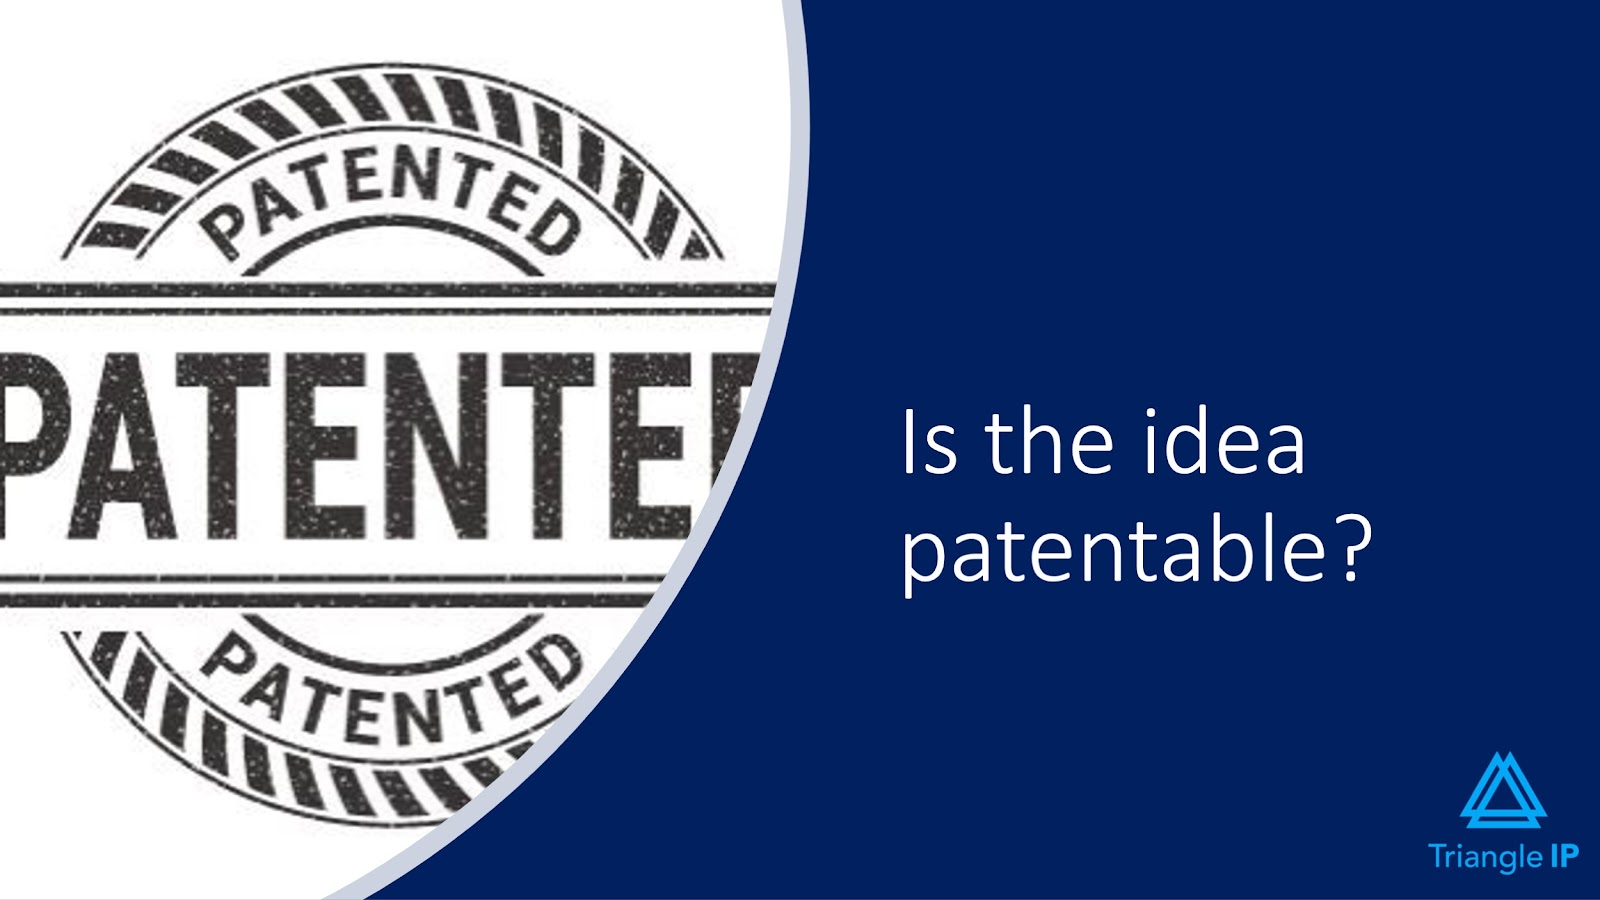 Evaluating Ideas for Patentability | Q5 - Is the Idea Patentable?